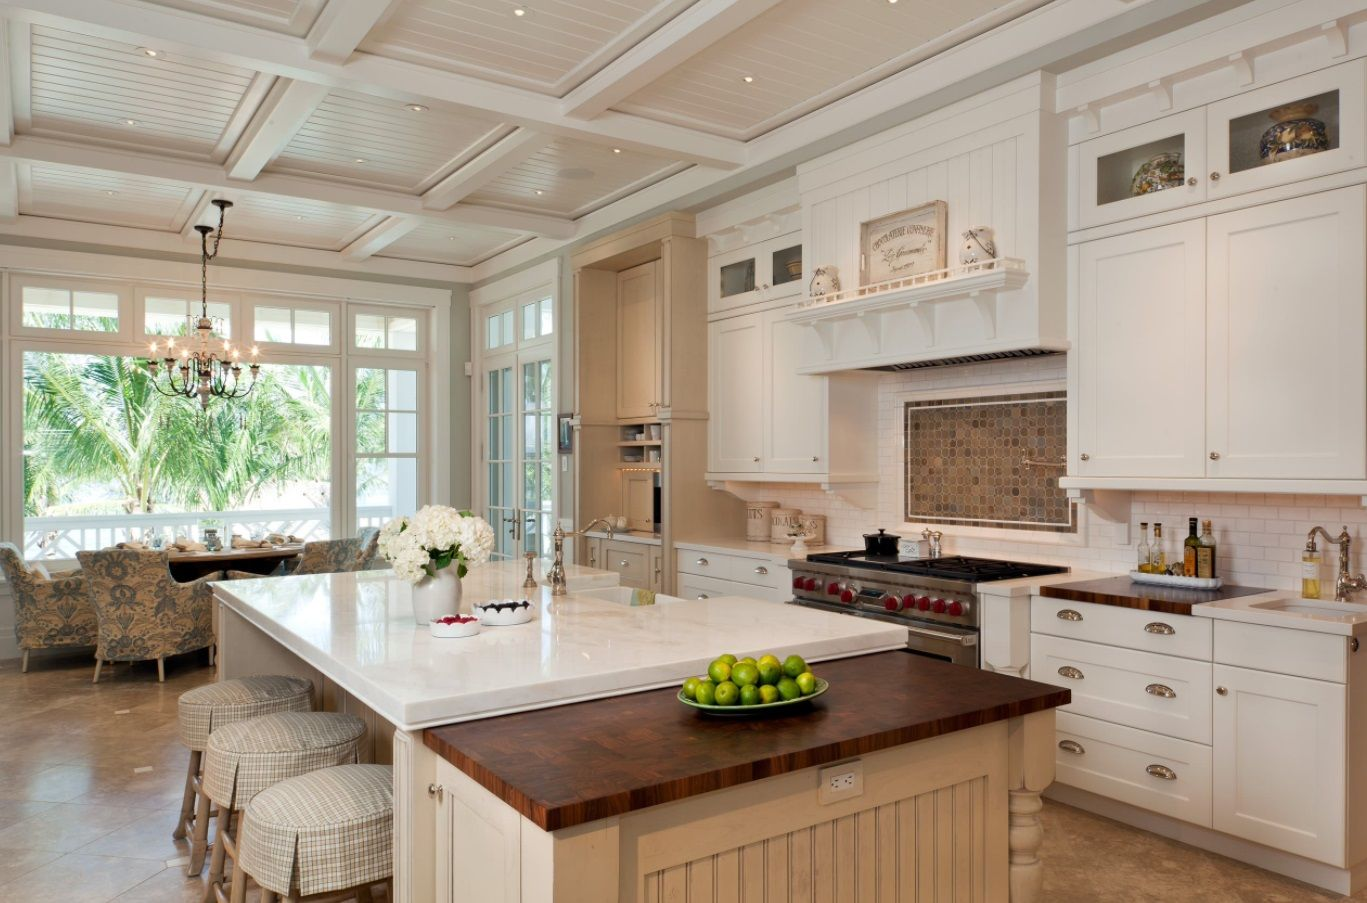 v-groove or bead board recessed panels in kitchen coffered ceiling